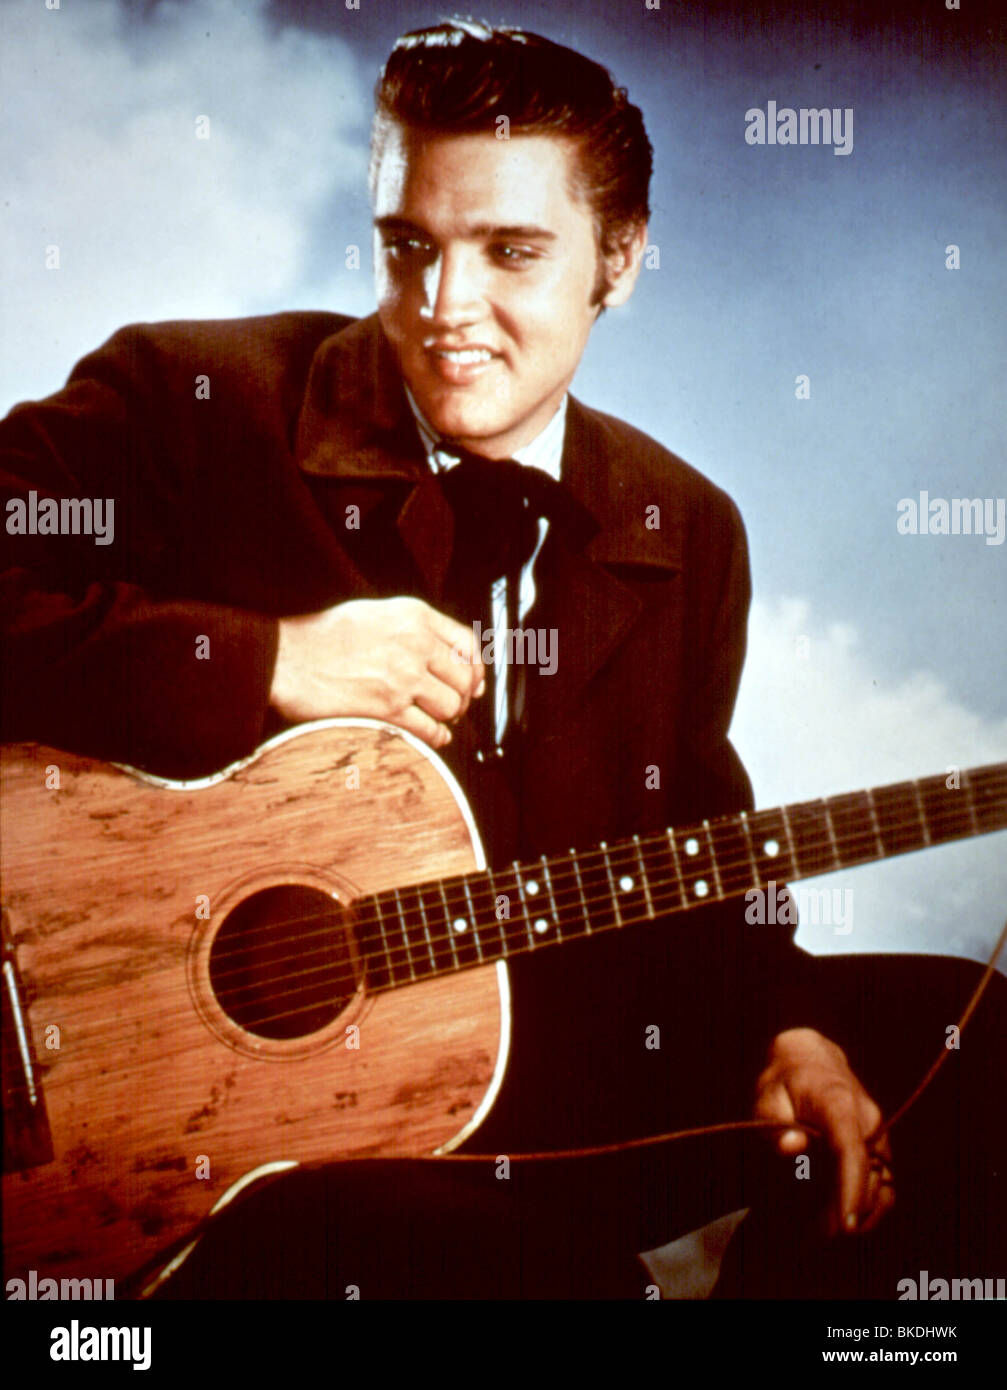 love me tender 1956 elvis presley lmet 001 l stock photo. Black Bedroom Furniture Sets. Home Design Ideas